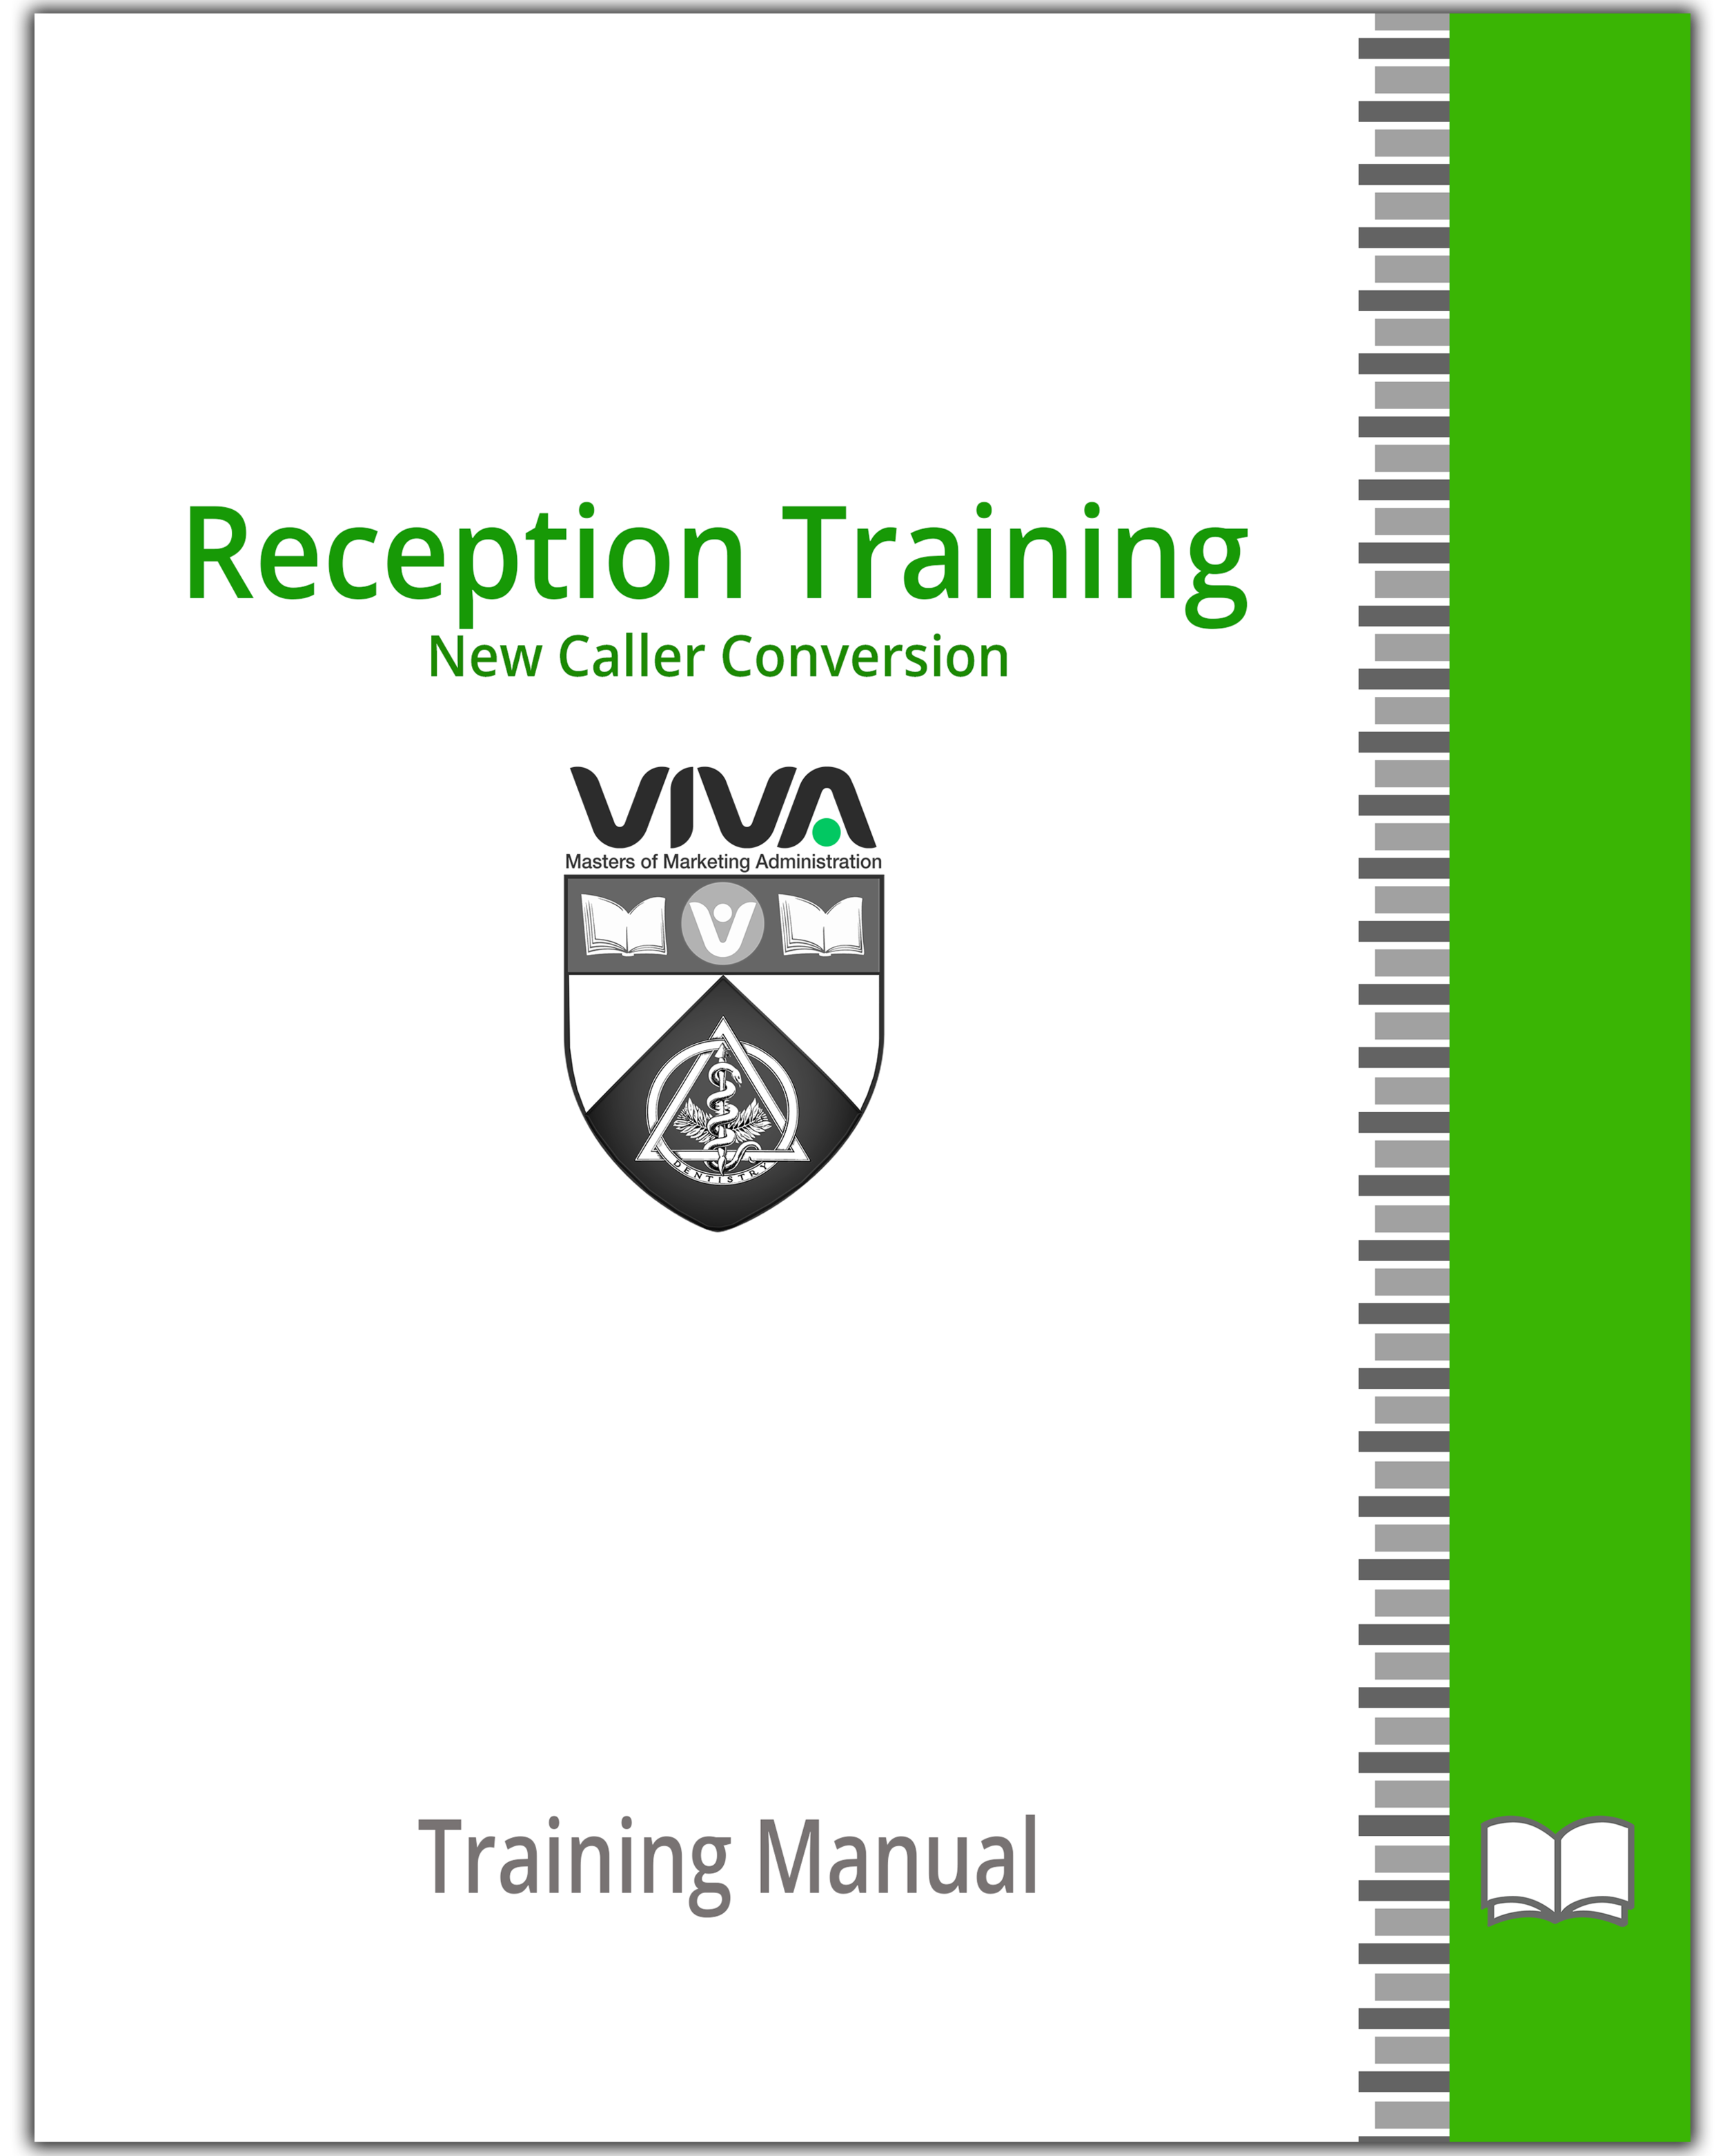 Reception Course Shadowed cover.png